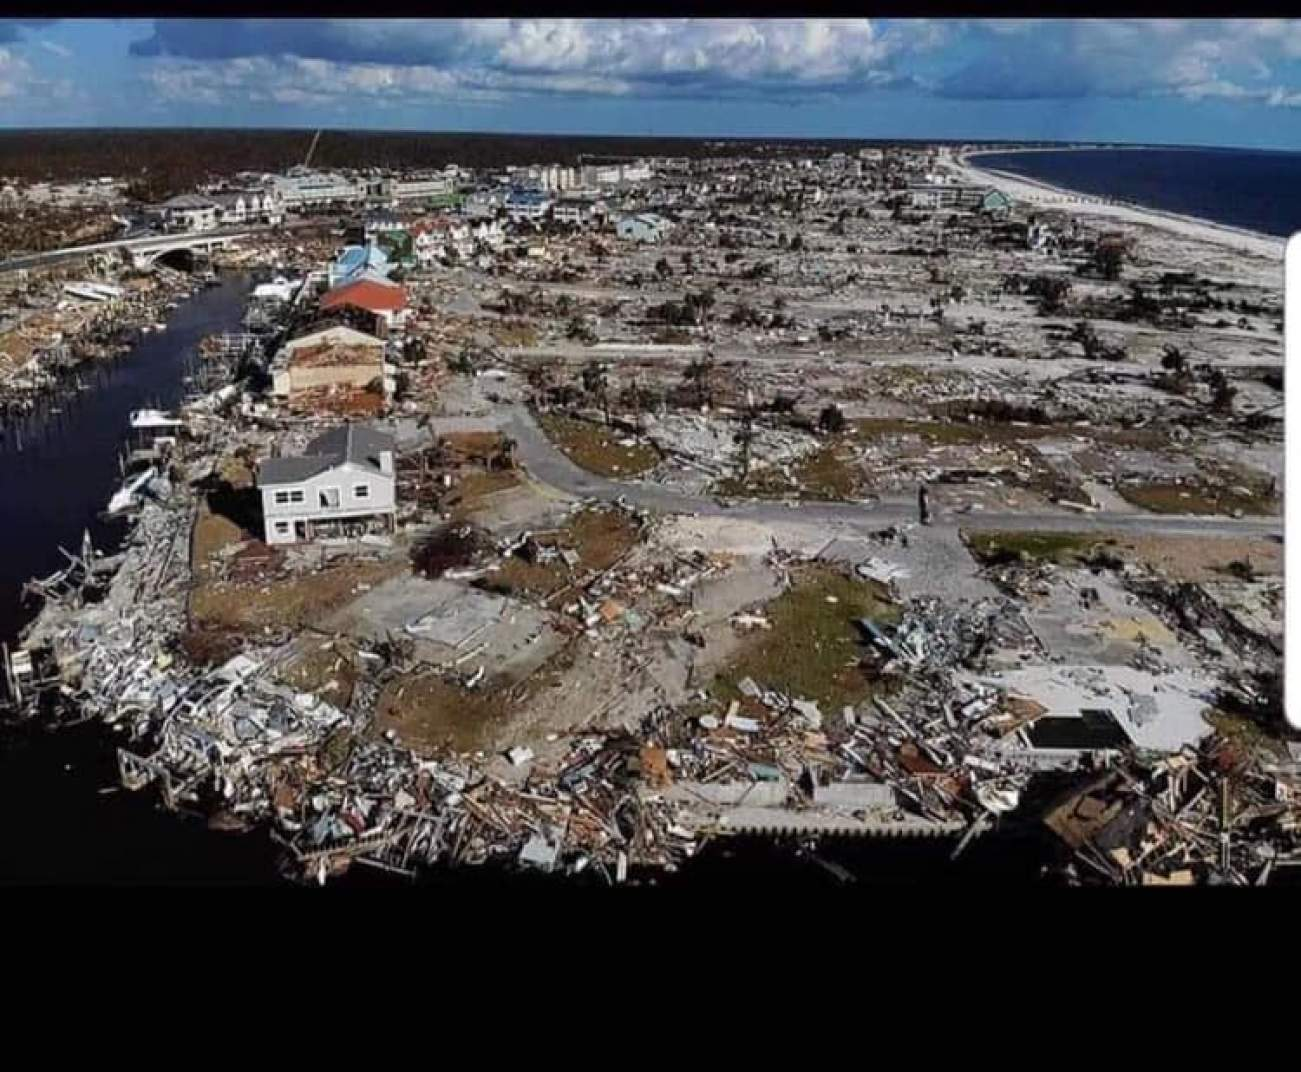 Does This Image Really Show A Bahamian Town Destroyed By Hurricane Dorian?